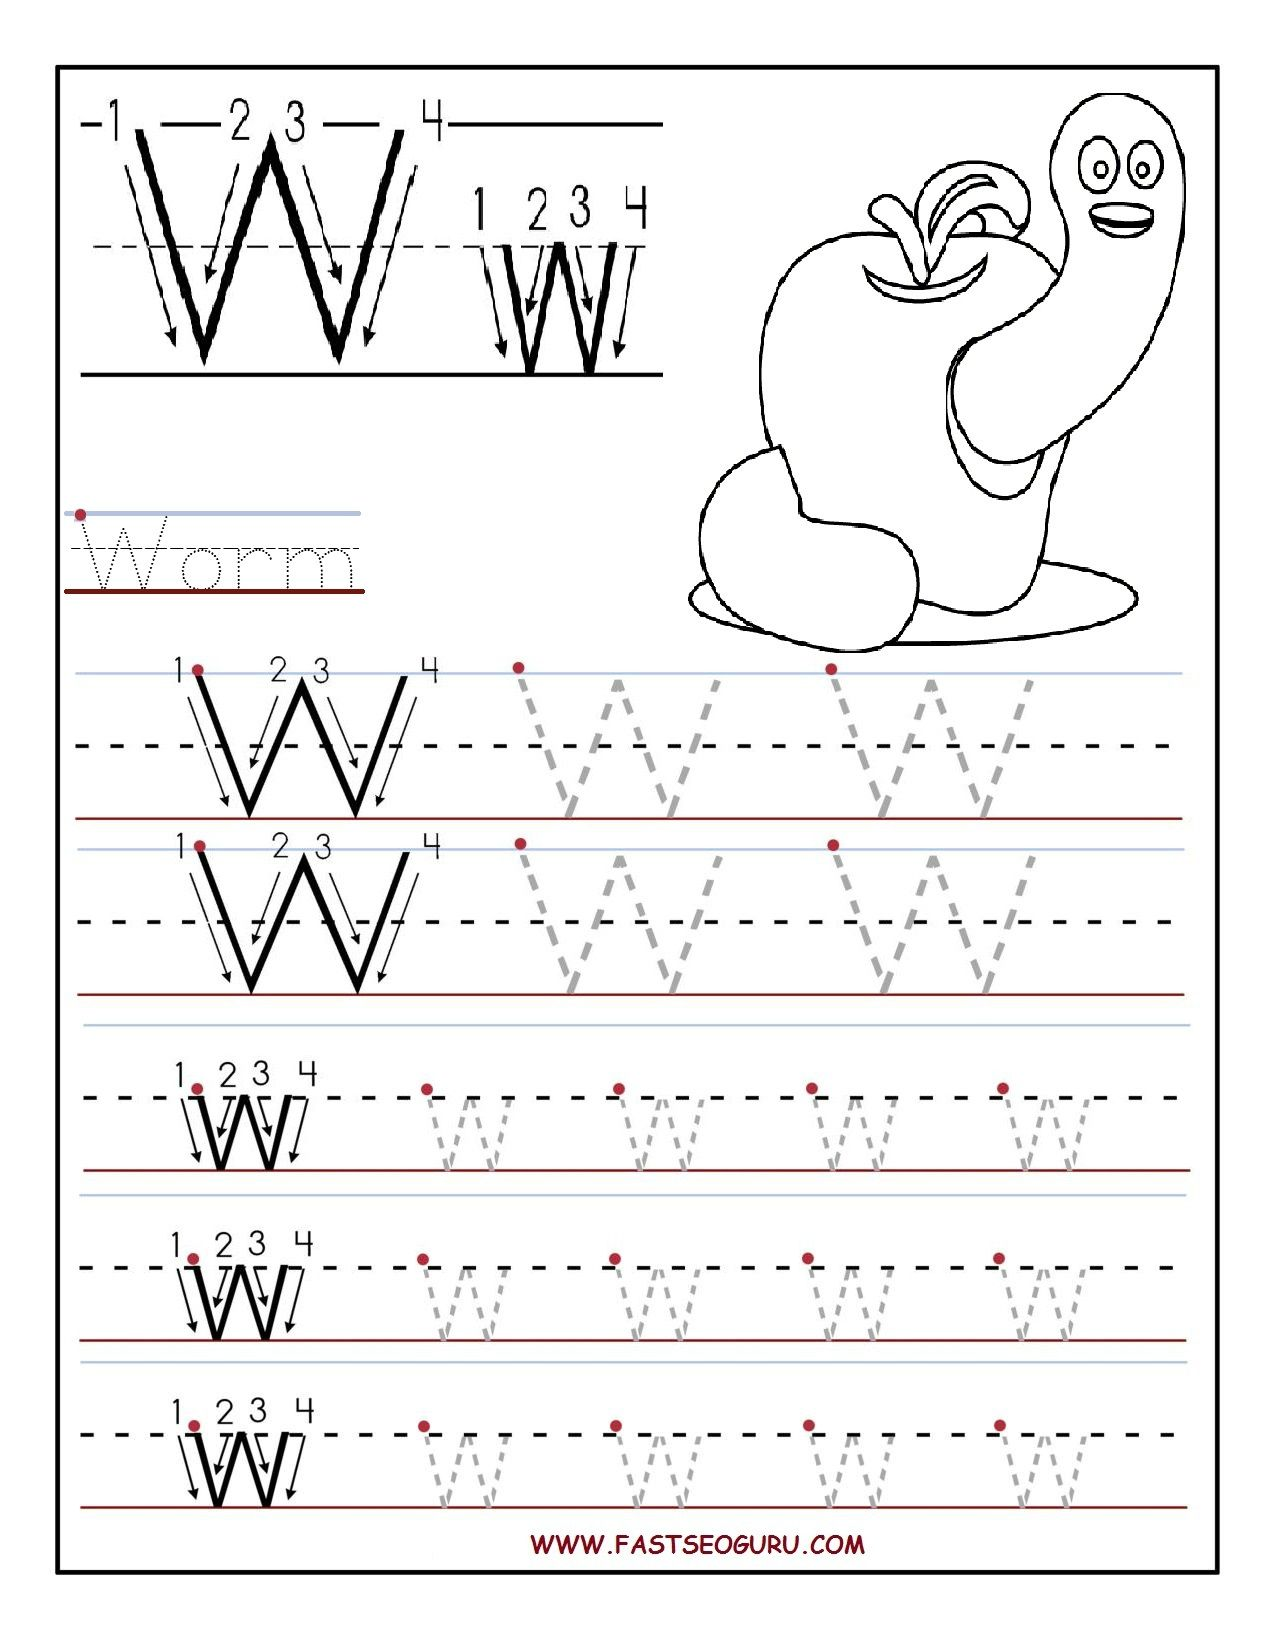 printable letter w tracing worksheets for preschool going gluten free letter tracing. Black Bedroom Furniture Sets. Home Design Ideas